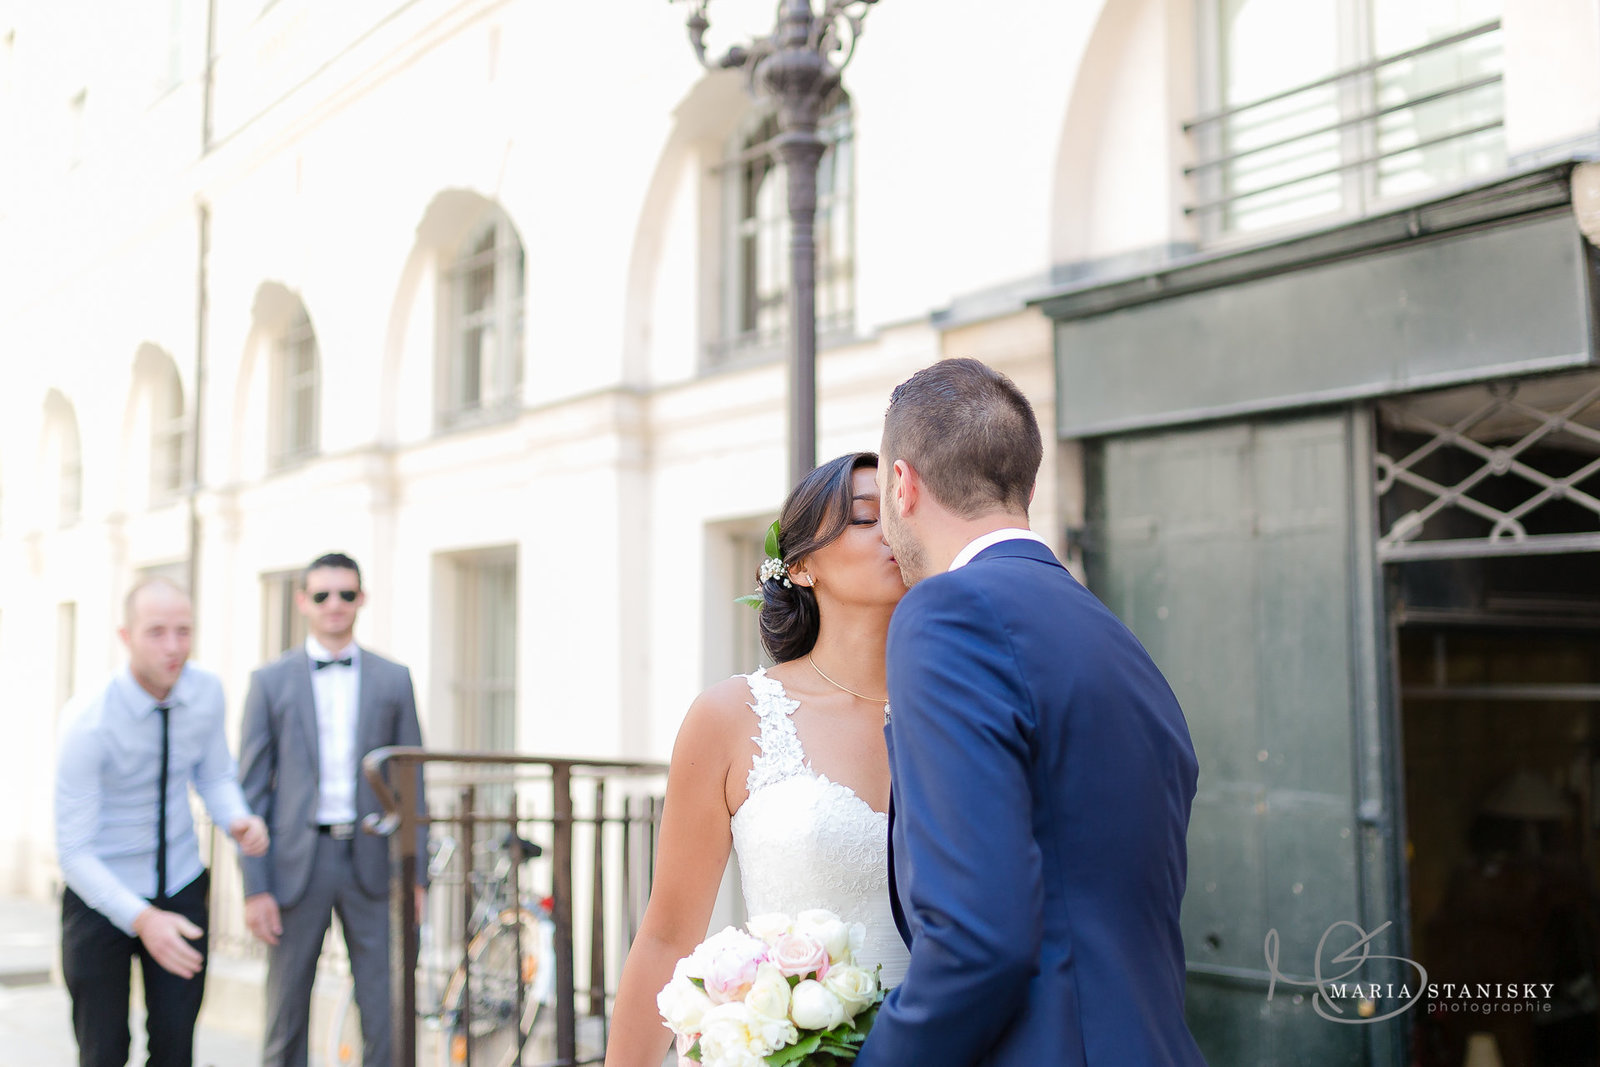 Mariage_Celine&Axel_11072015-0012